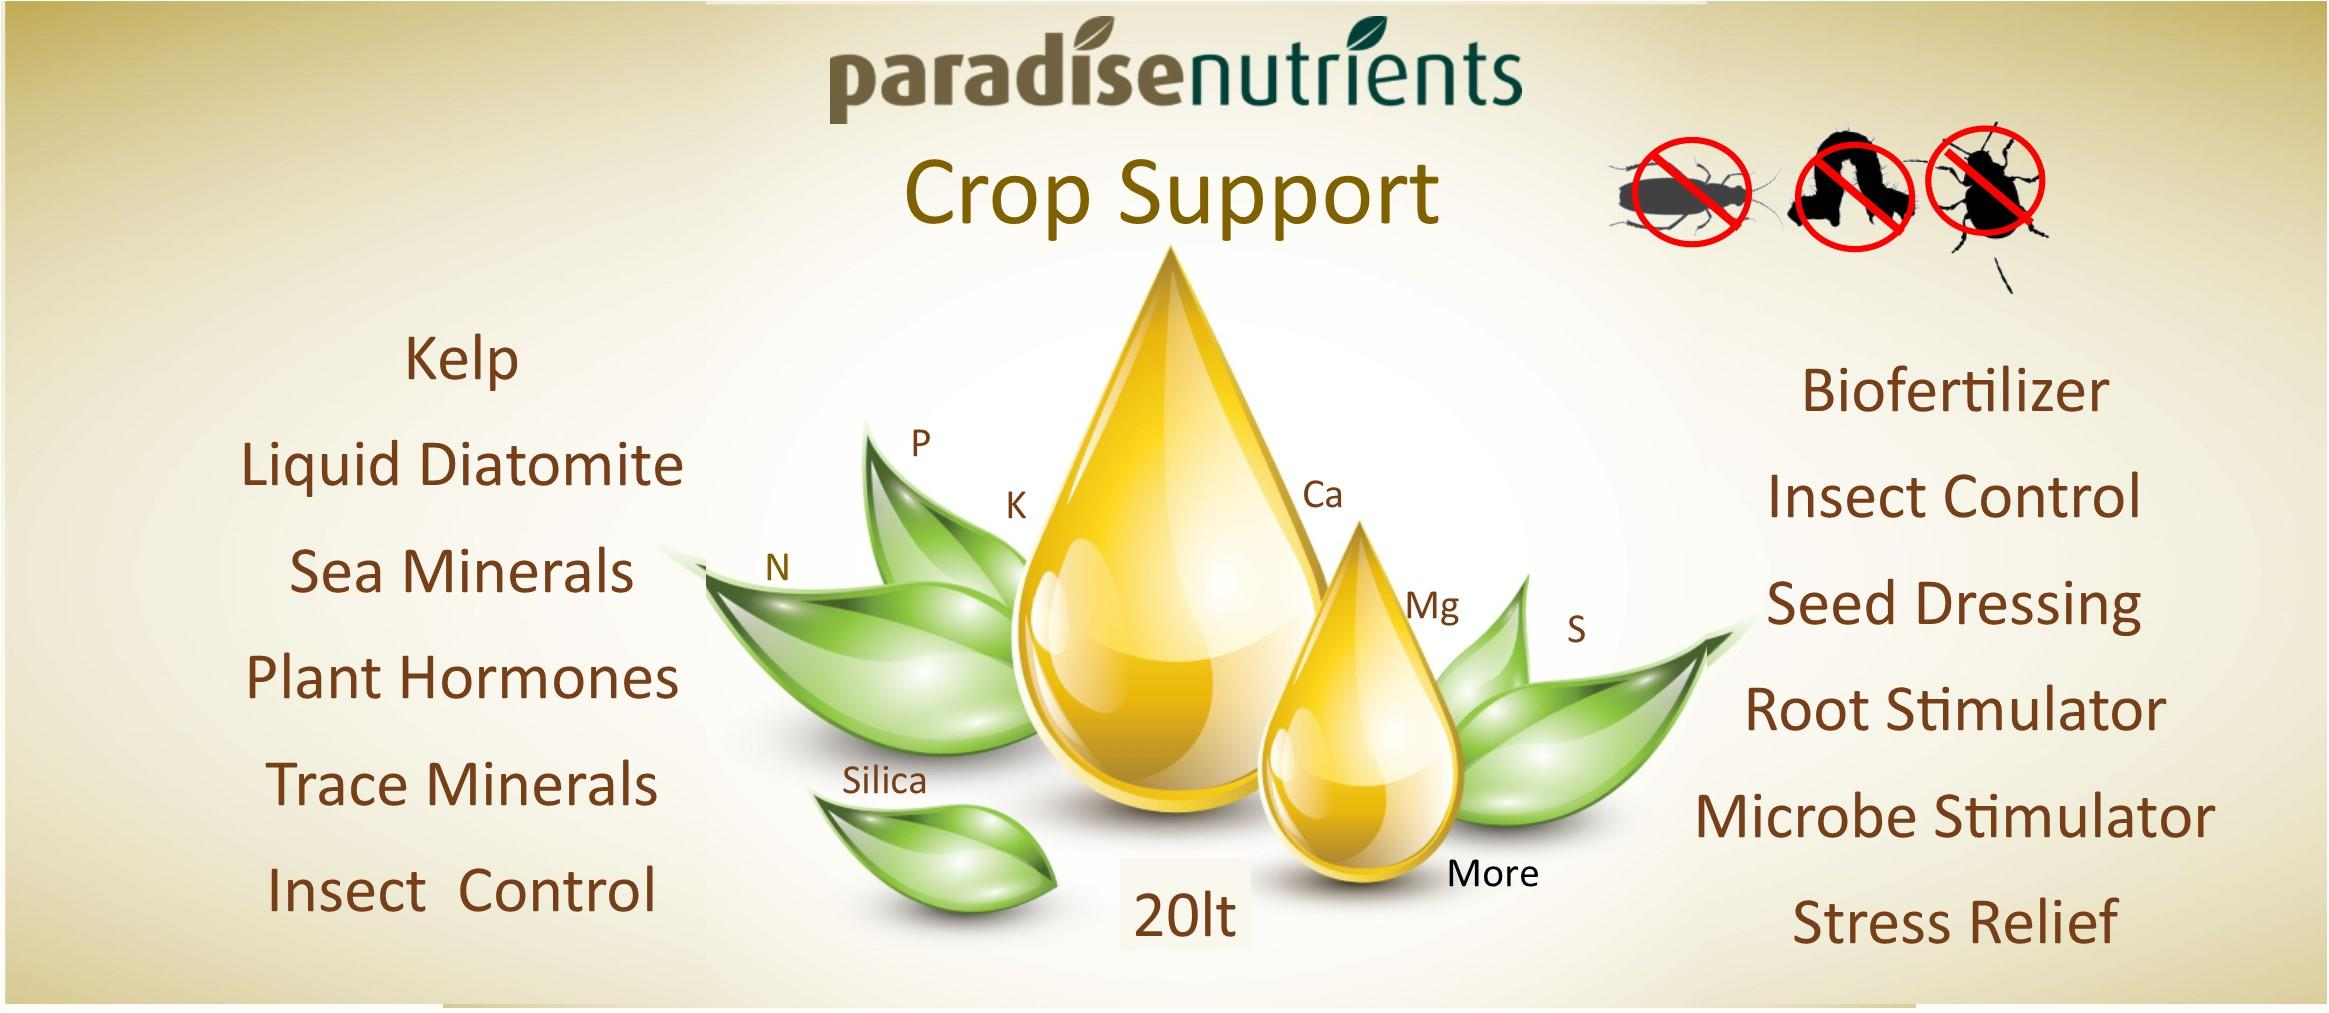 Crop support pic1